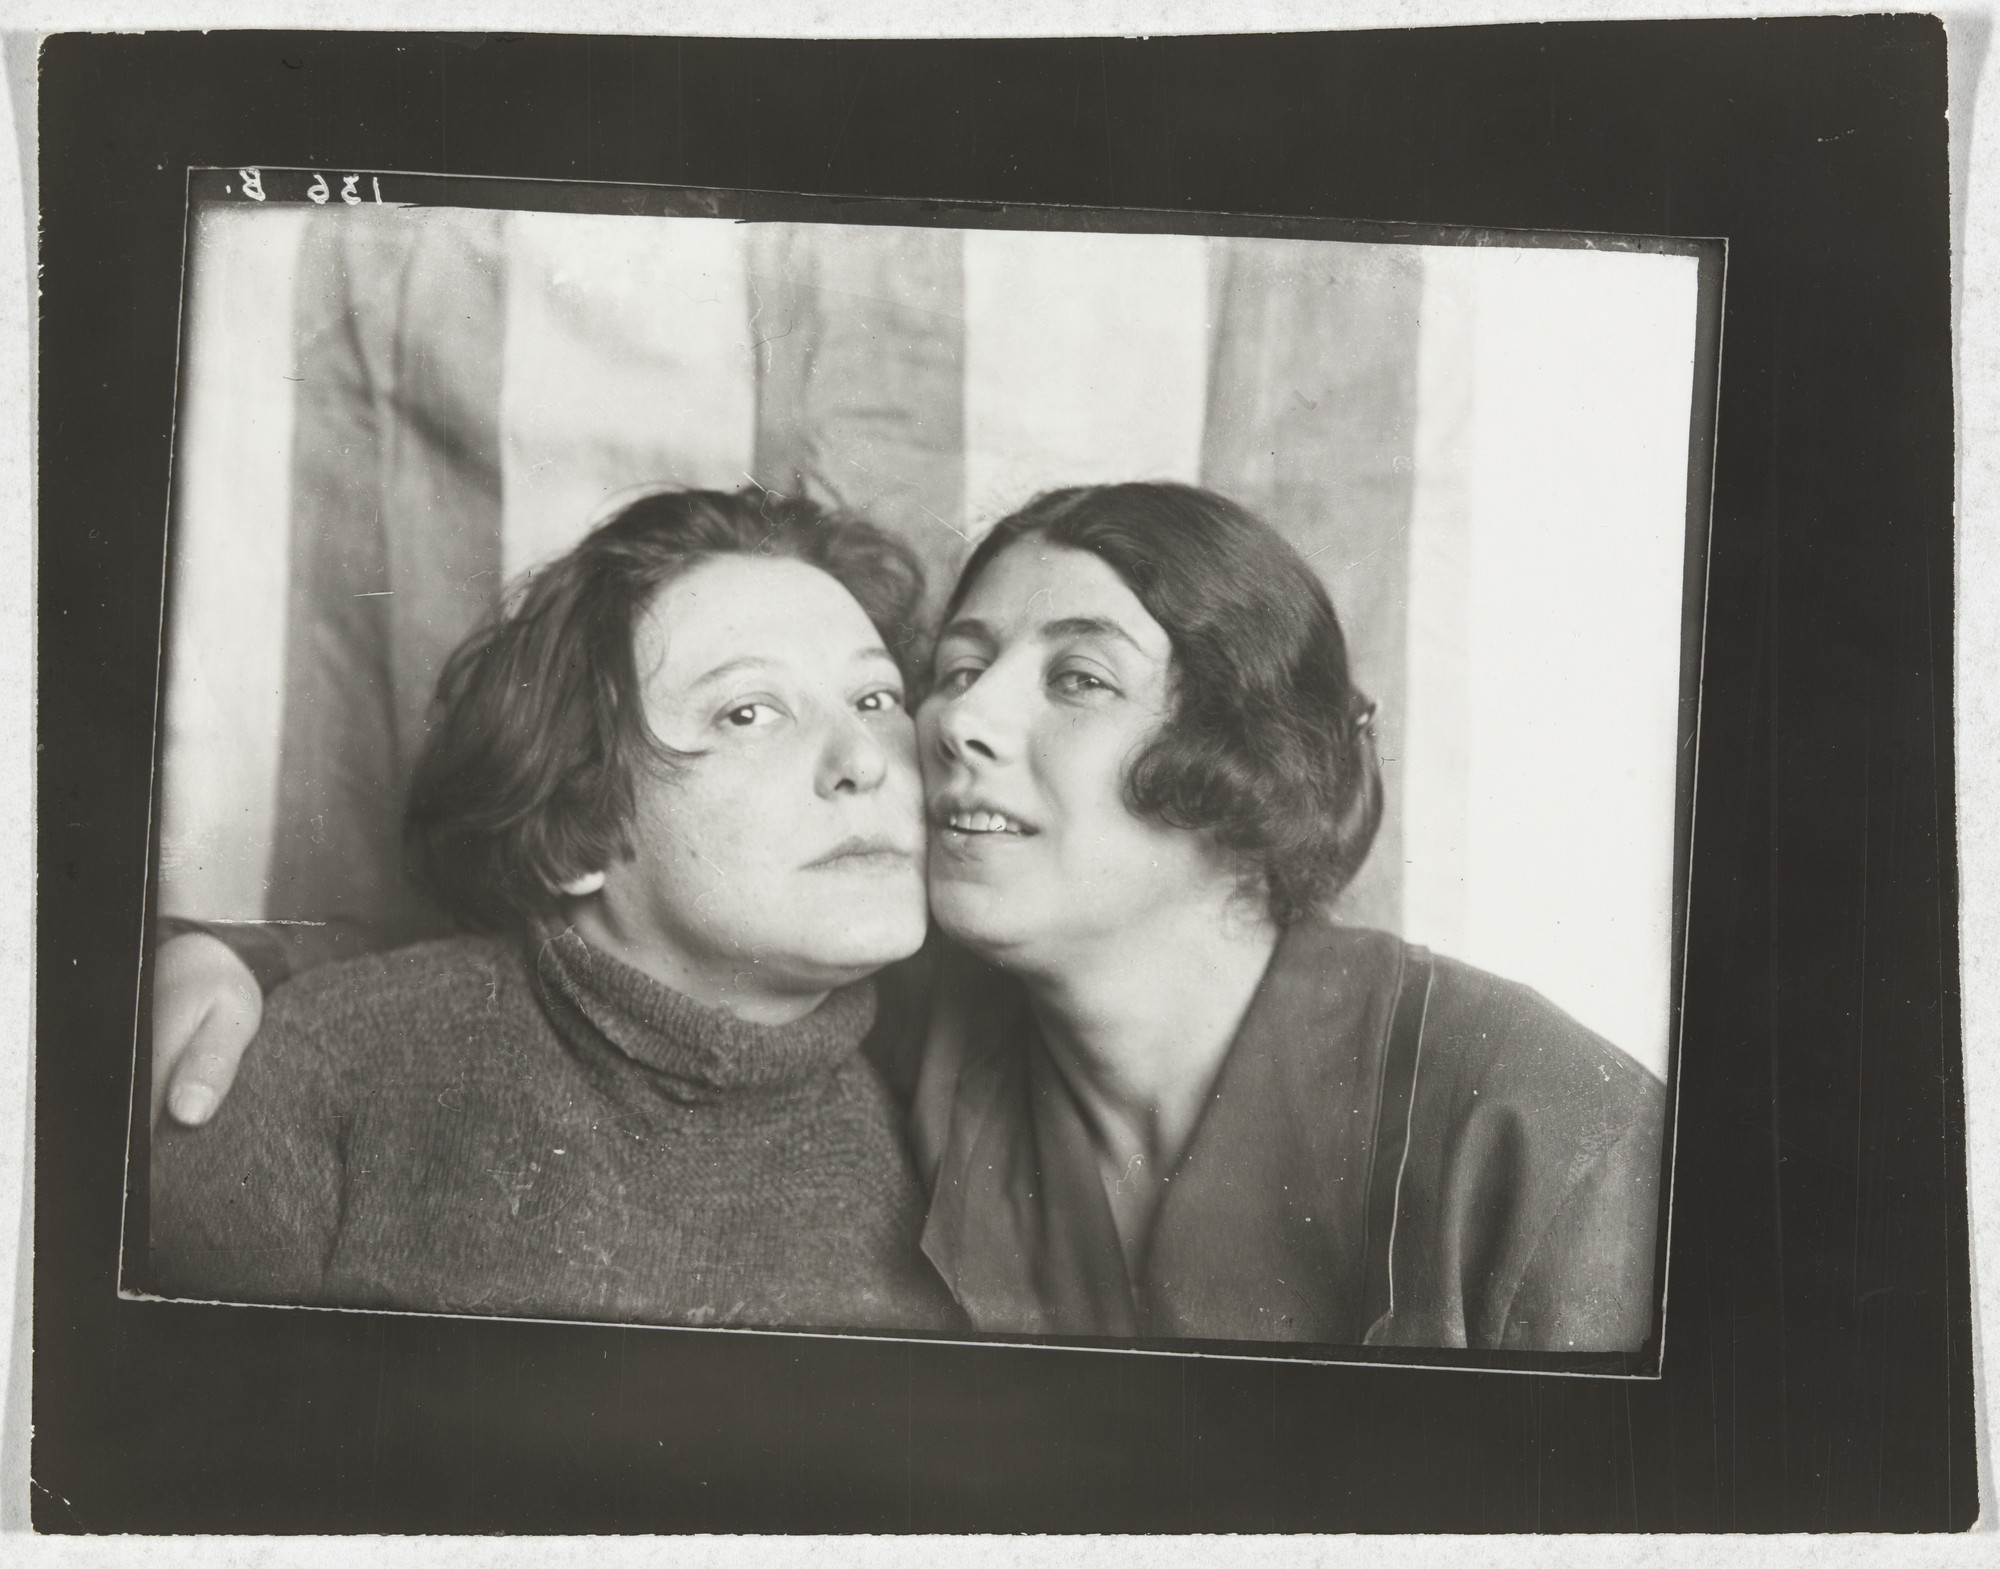 Aleksandr Rodchenko. Untitled (Varvara Stepanova and Lyubov Popova). 1924